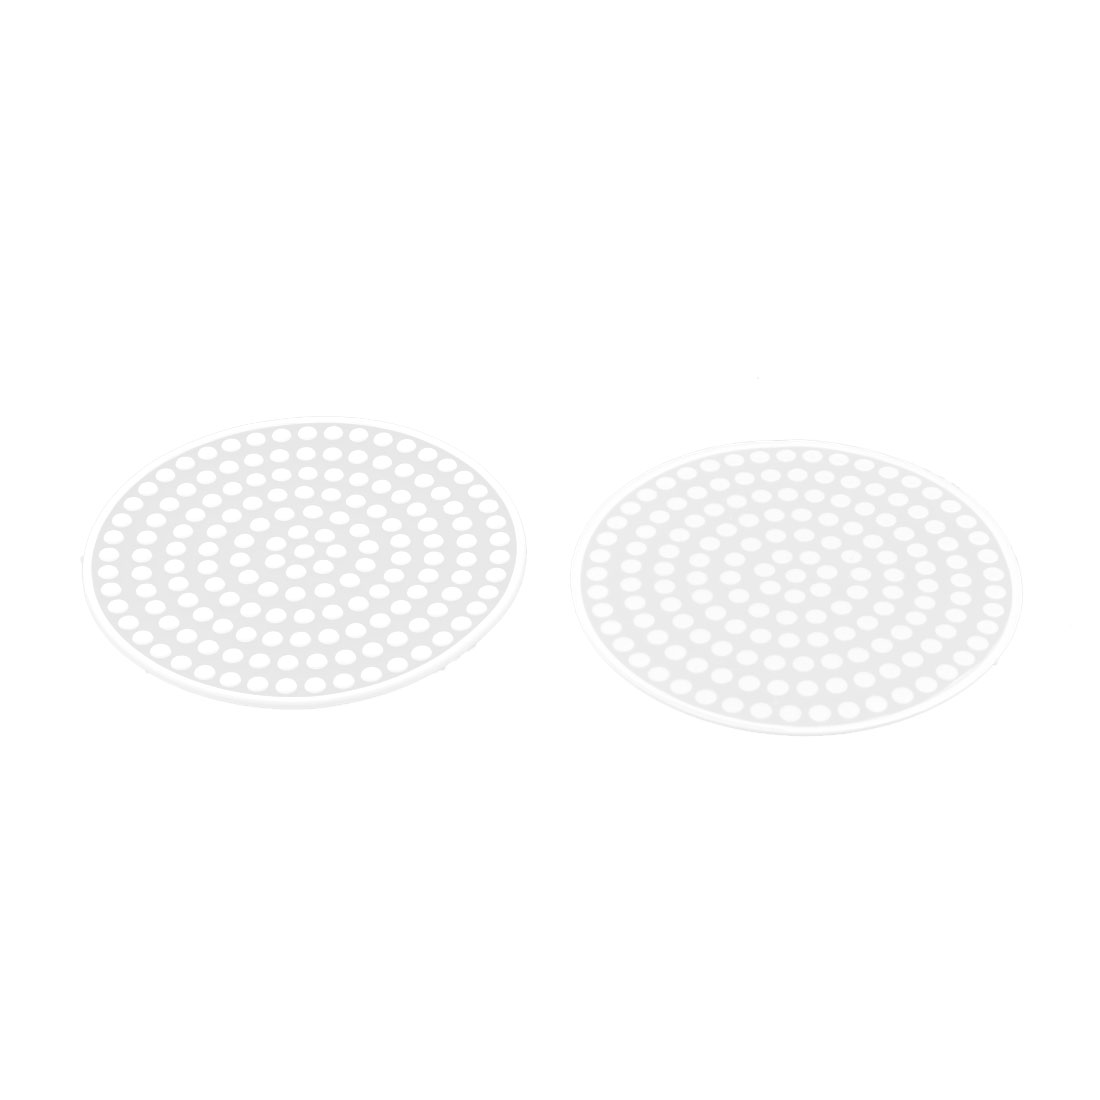 Silicone Round Shape Dots Design Heat Resistant Cup Bowl Mat Coaster White 2 Pcs